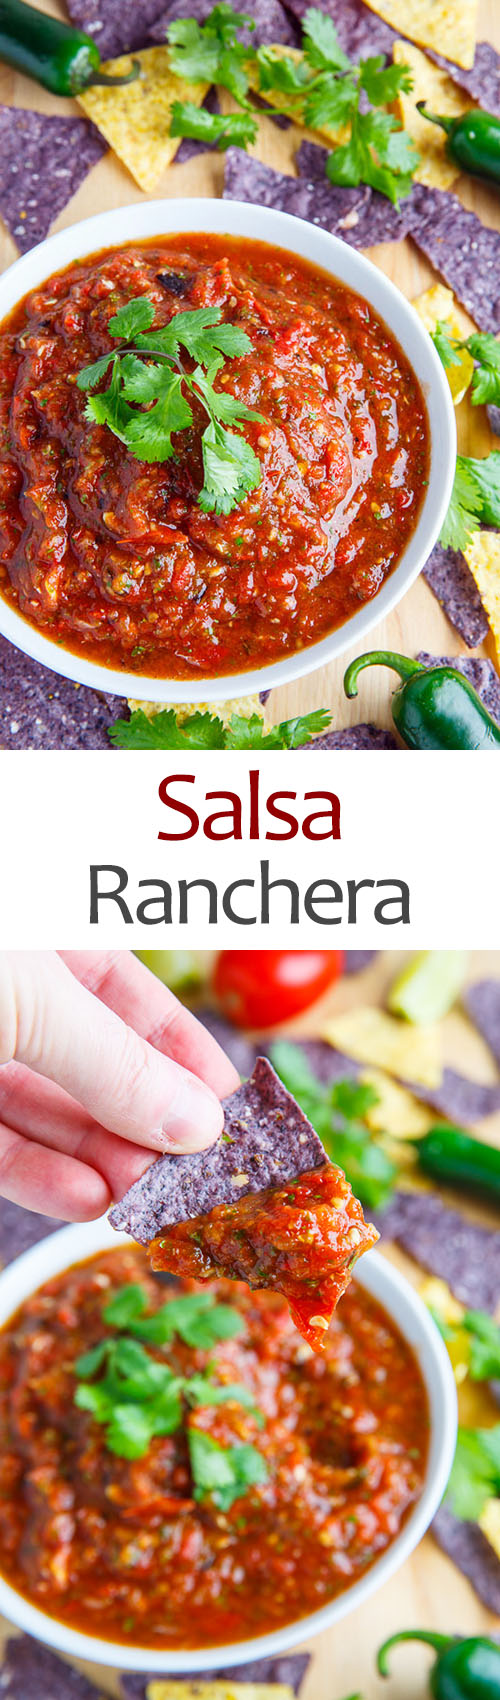 Salsa Ranchera on Closet Cooking